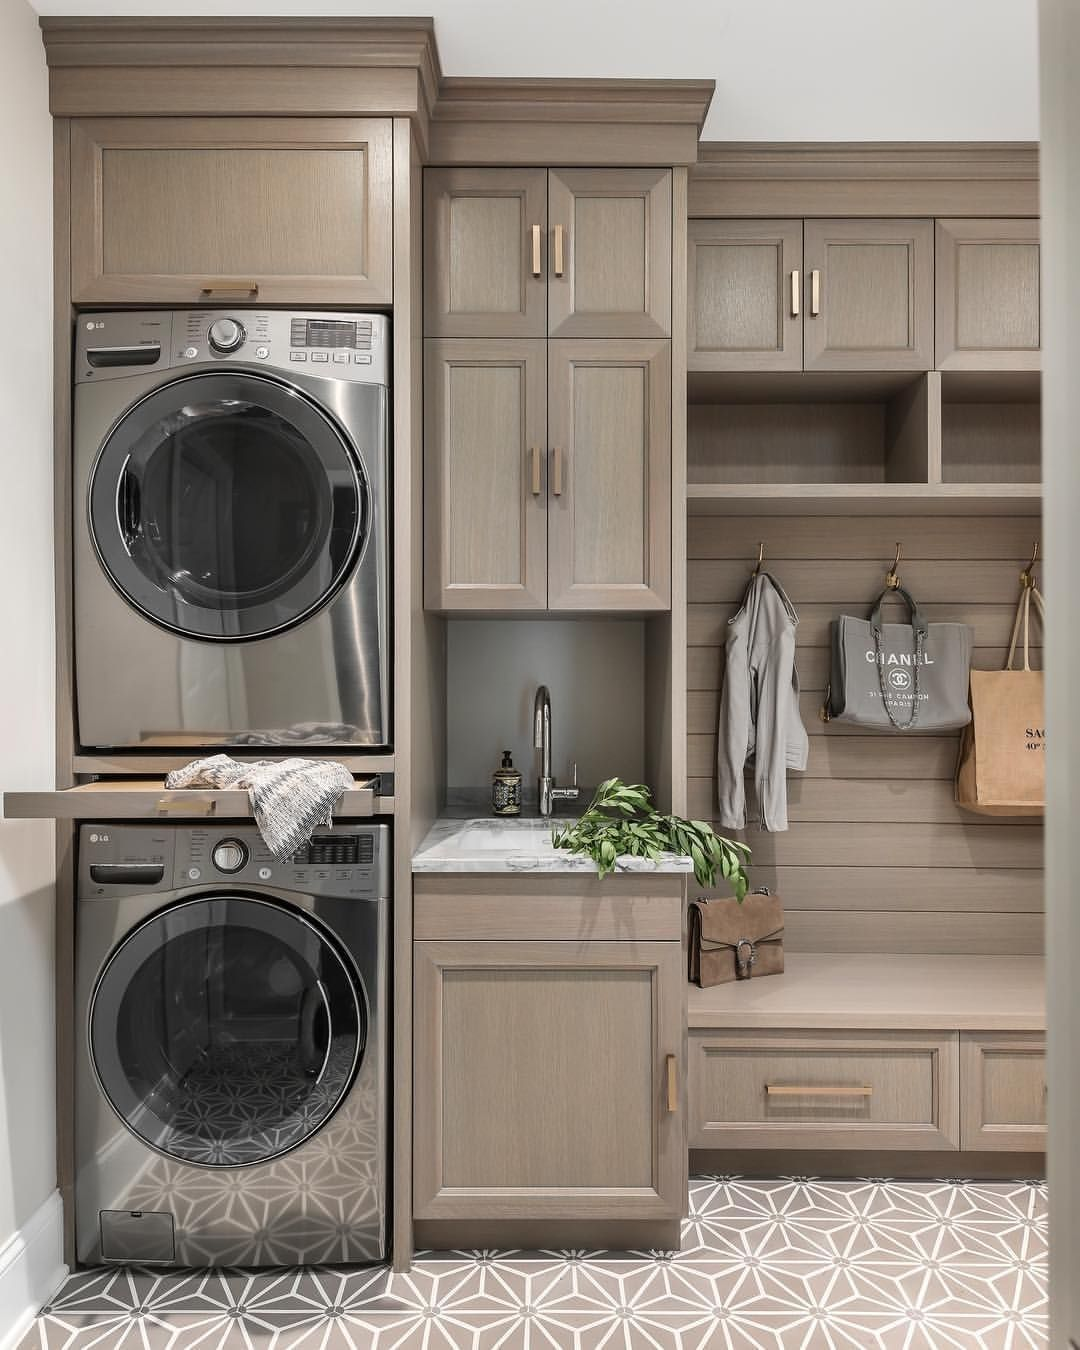 45 Best Small Laundry Room Design Ideas - ZYHOMY